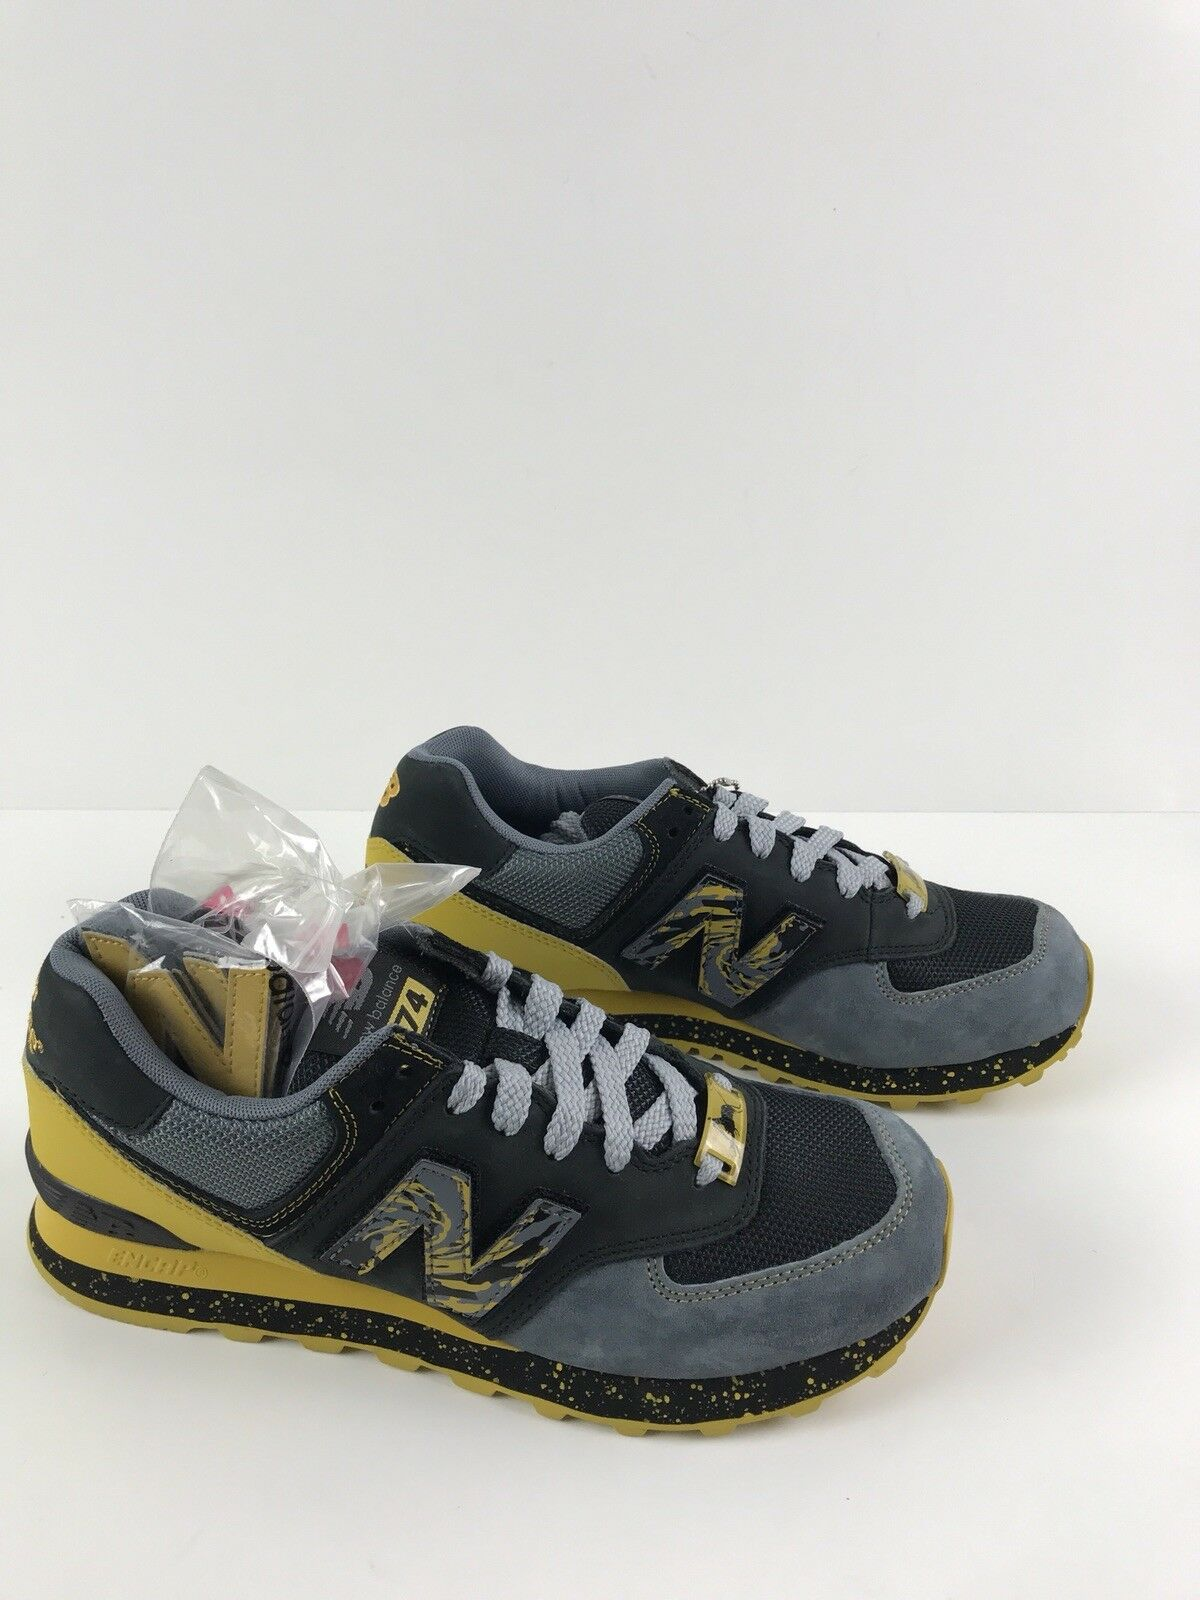 Shelflife x Dr Z x New Balance City Of gold ML574CG  Blk Ylw Mens Size 8.5